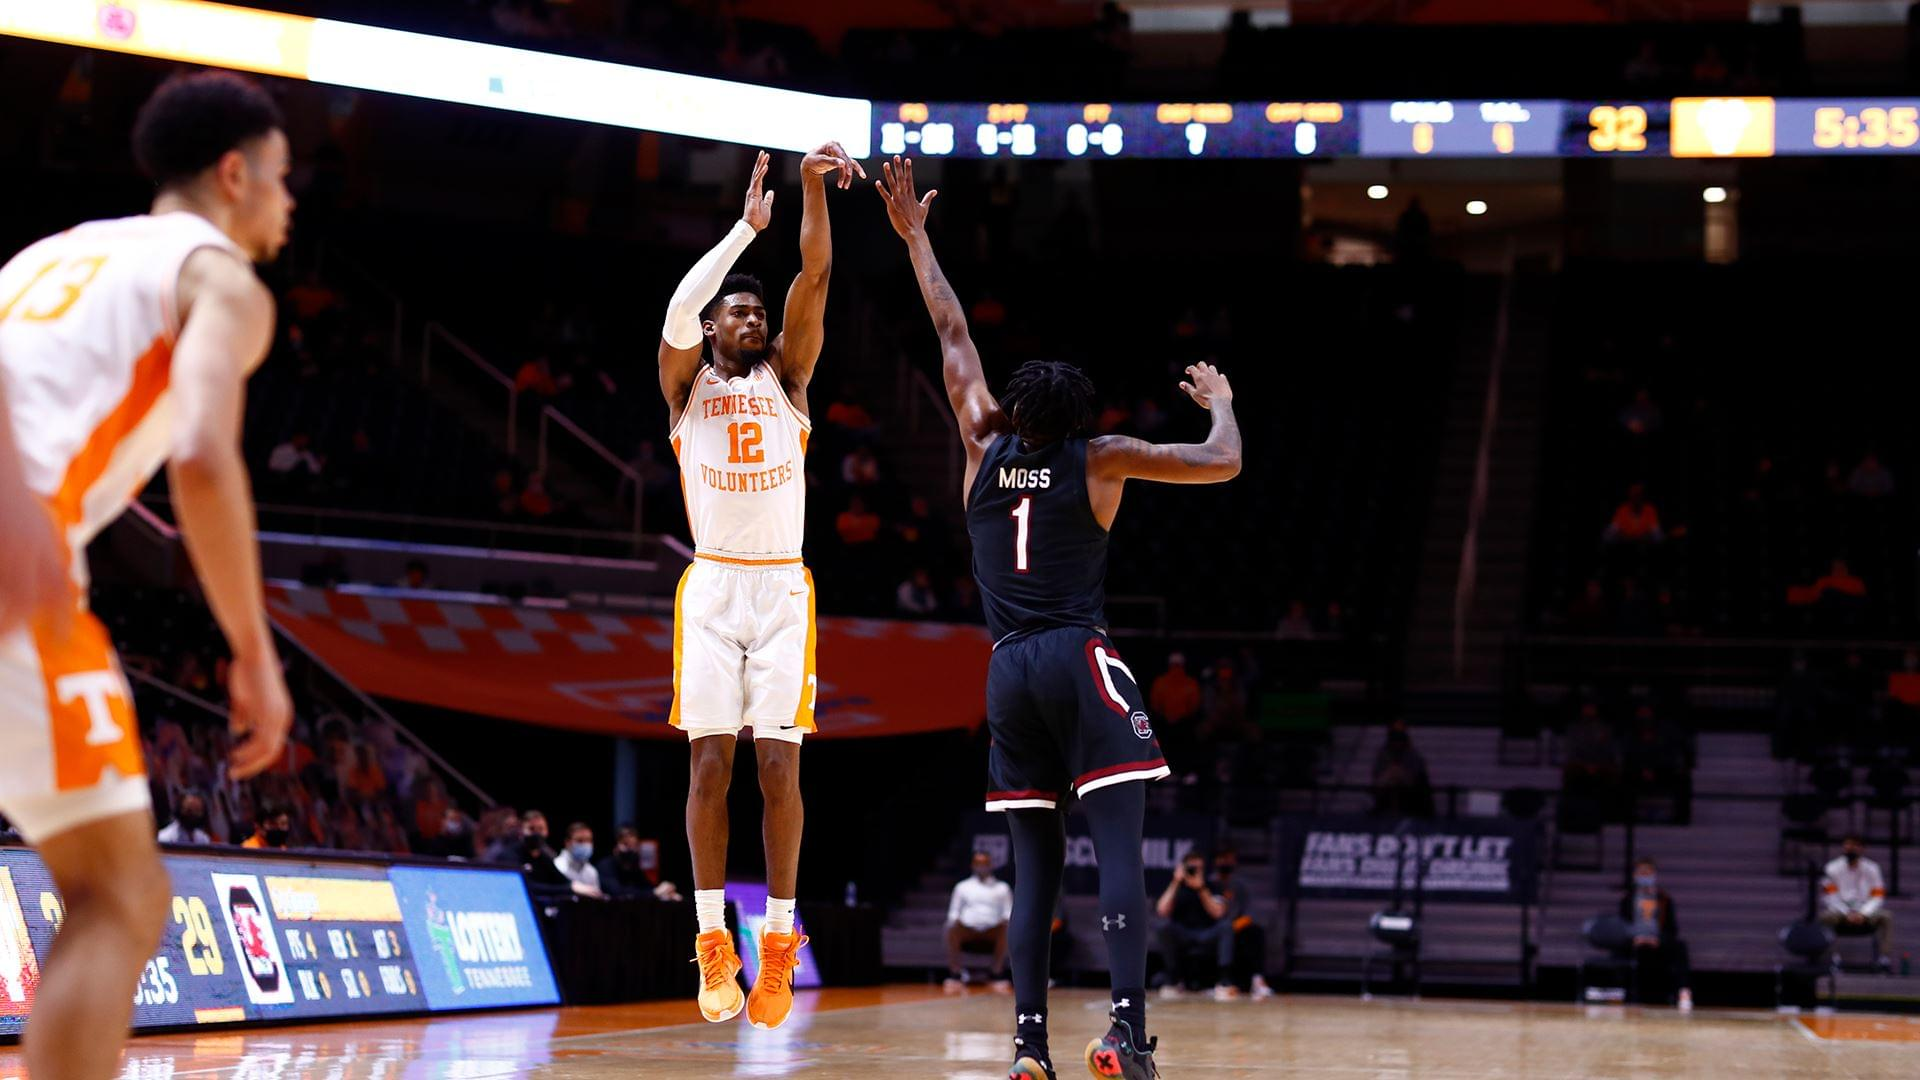 Bailey's Hot Shooting Night Leads Vols Past South Carolina, 93-73